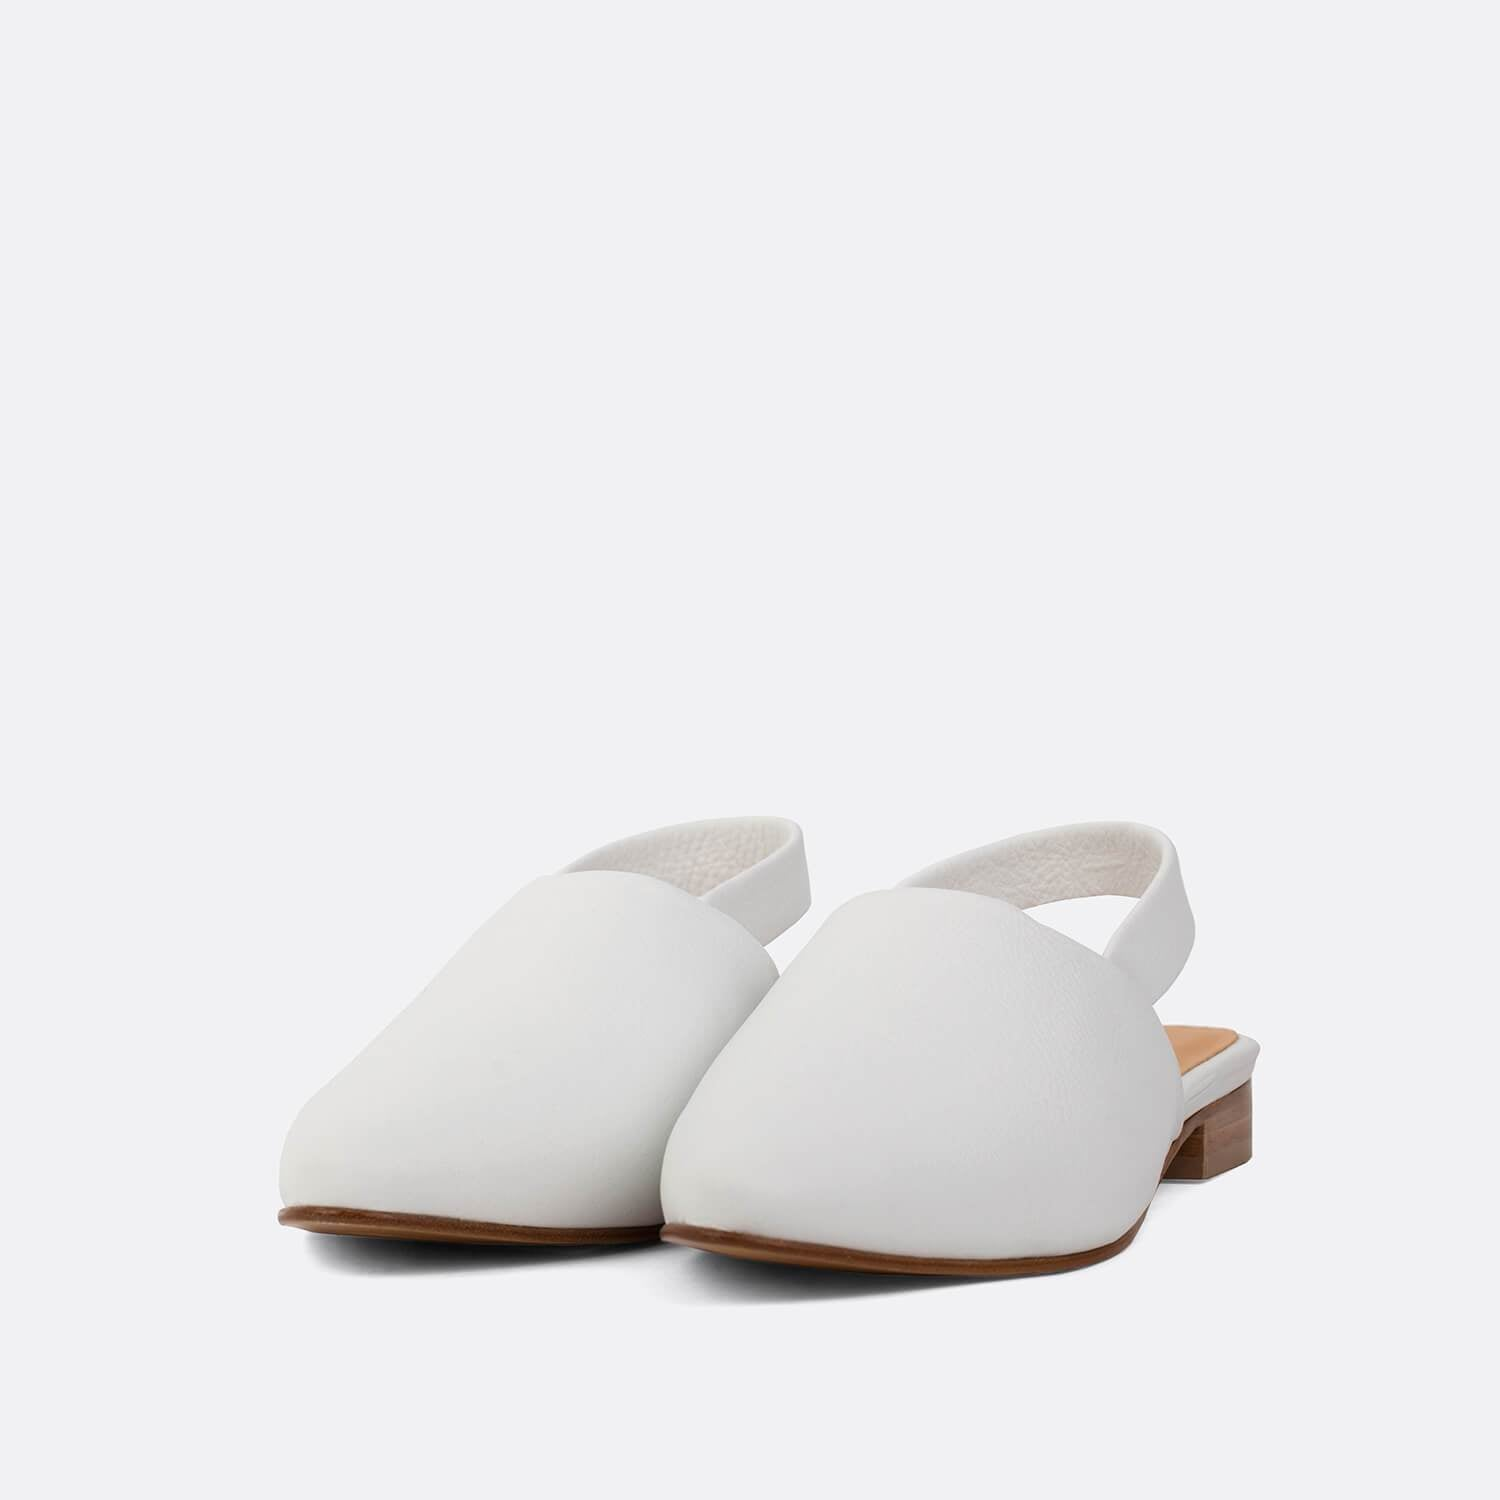 bcb27994f only2me Shoes | Catarina Slingback Mules | The Feeting Room – The ...